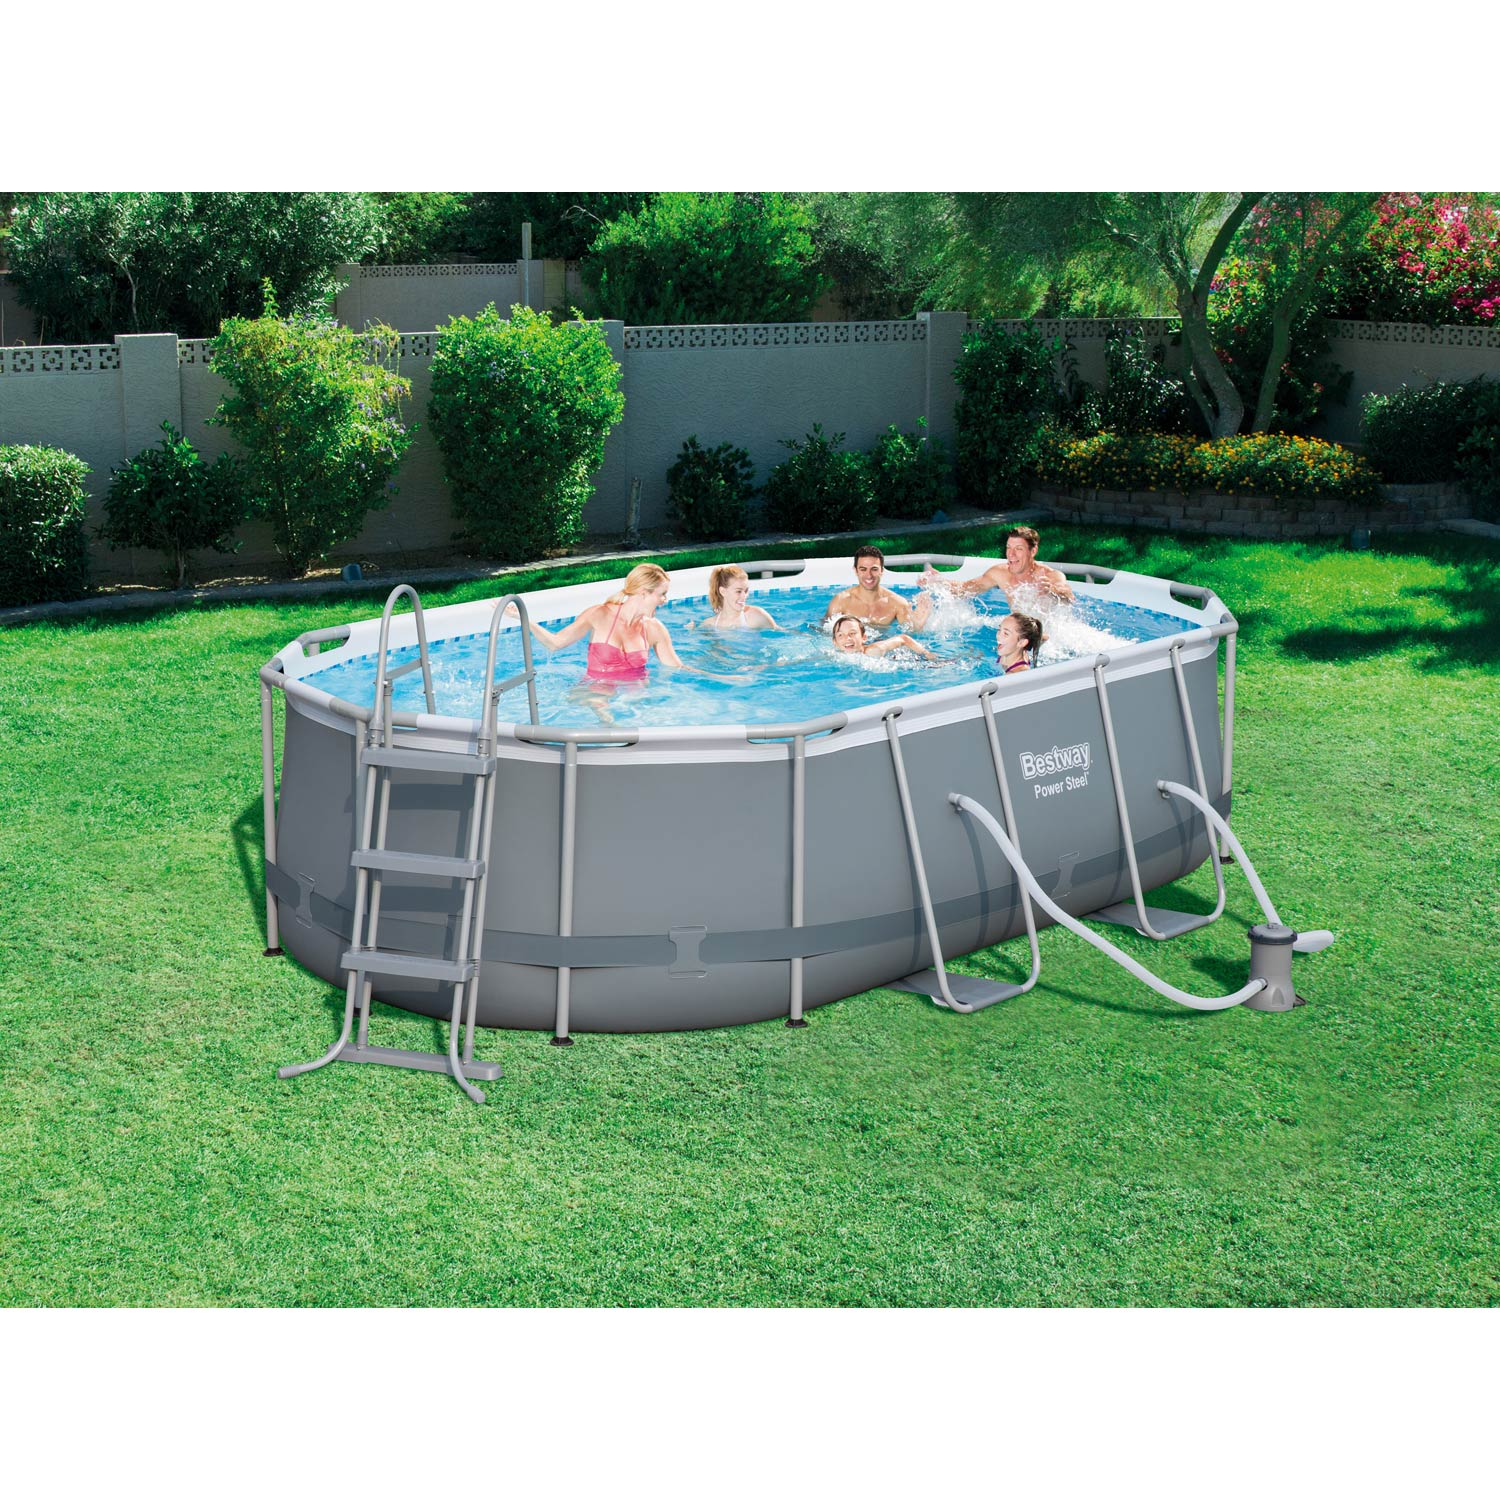 Piscine hors sol autoportante tubulaire bestway l x for Piscine hors sol blooma